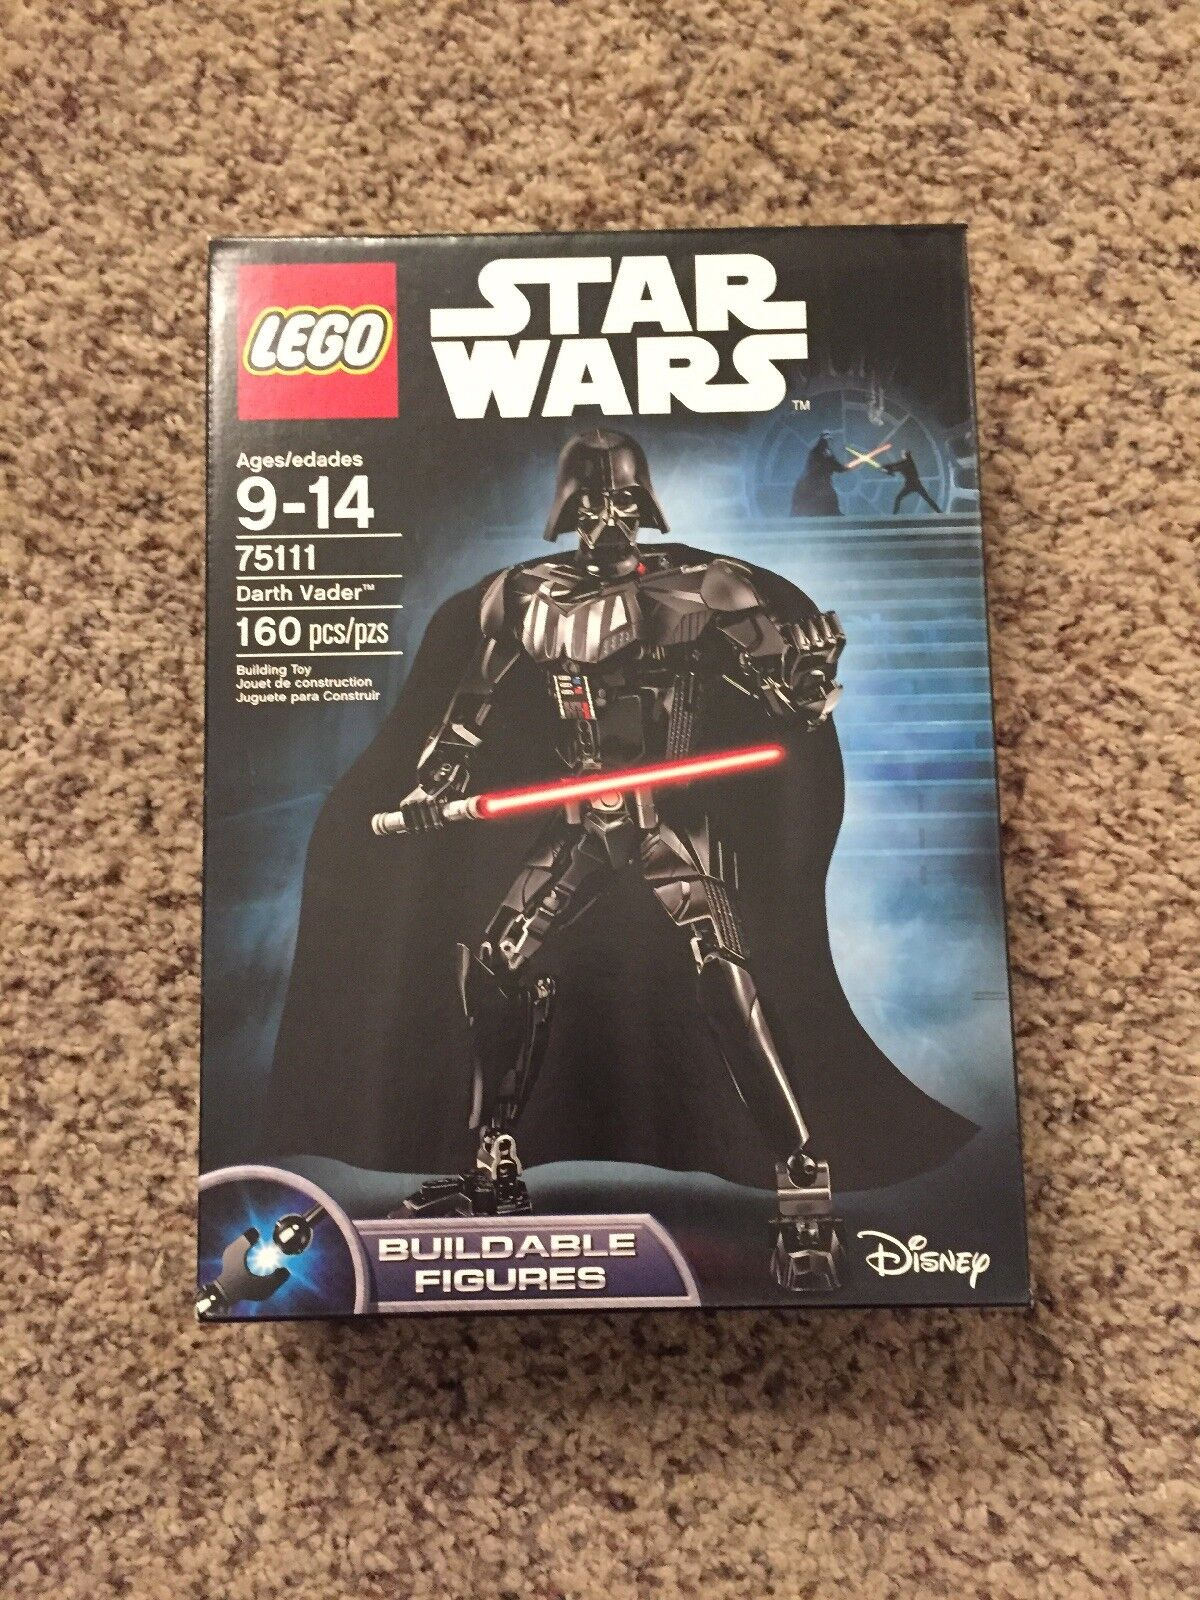 Lego Star Wars Darth Vader 75111 - Nuovo in Unopened Box